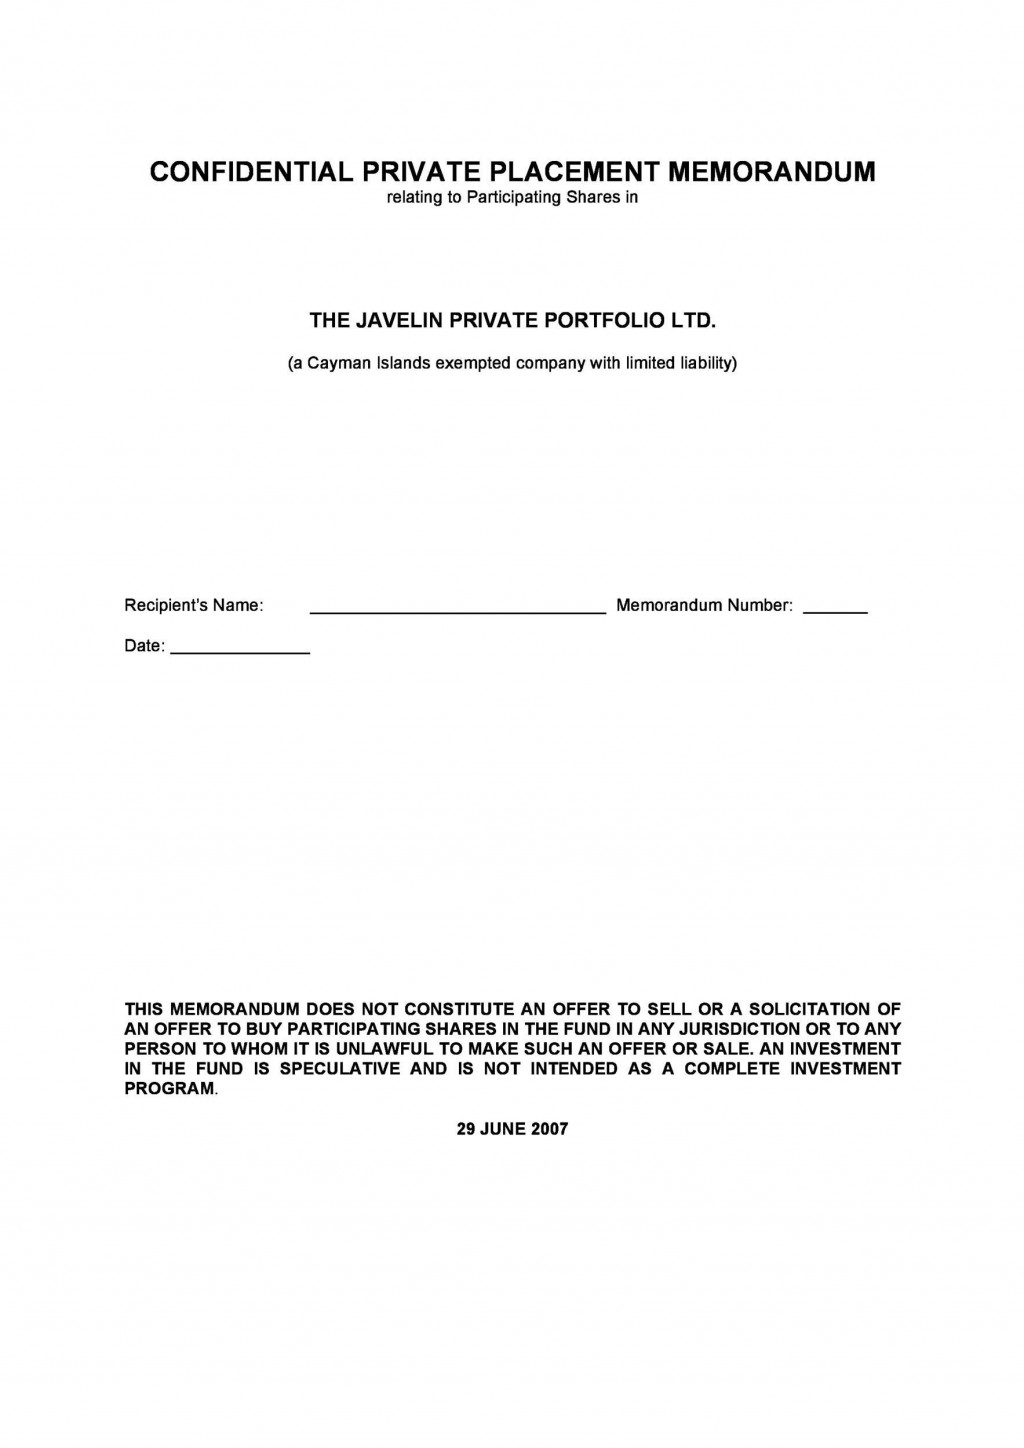 005 Frightening Private Placement Memorandum Template Free Download Highest Quality Large